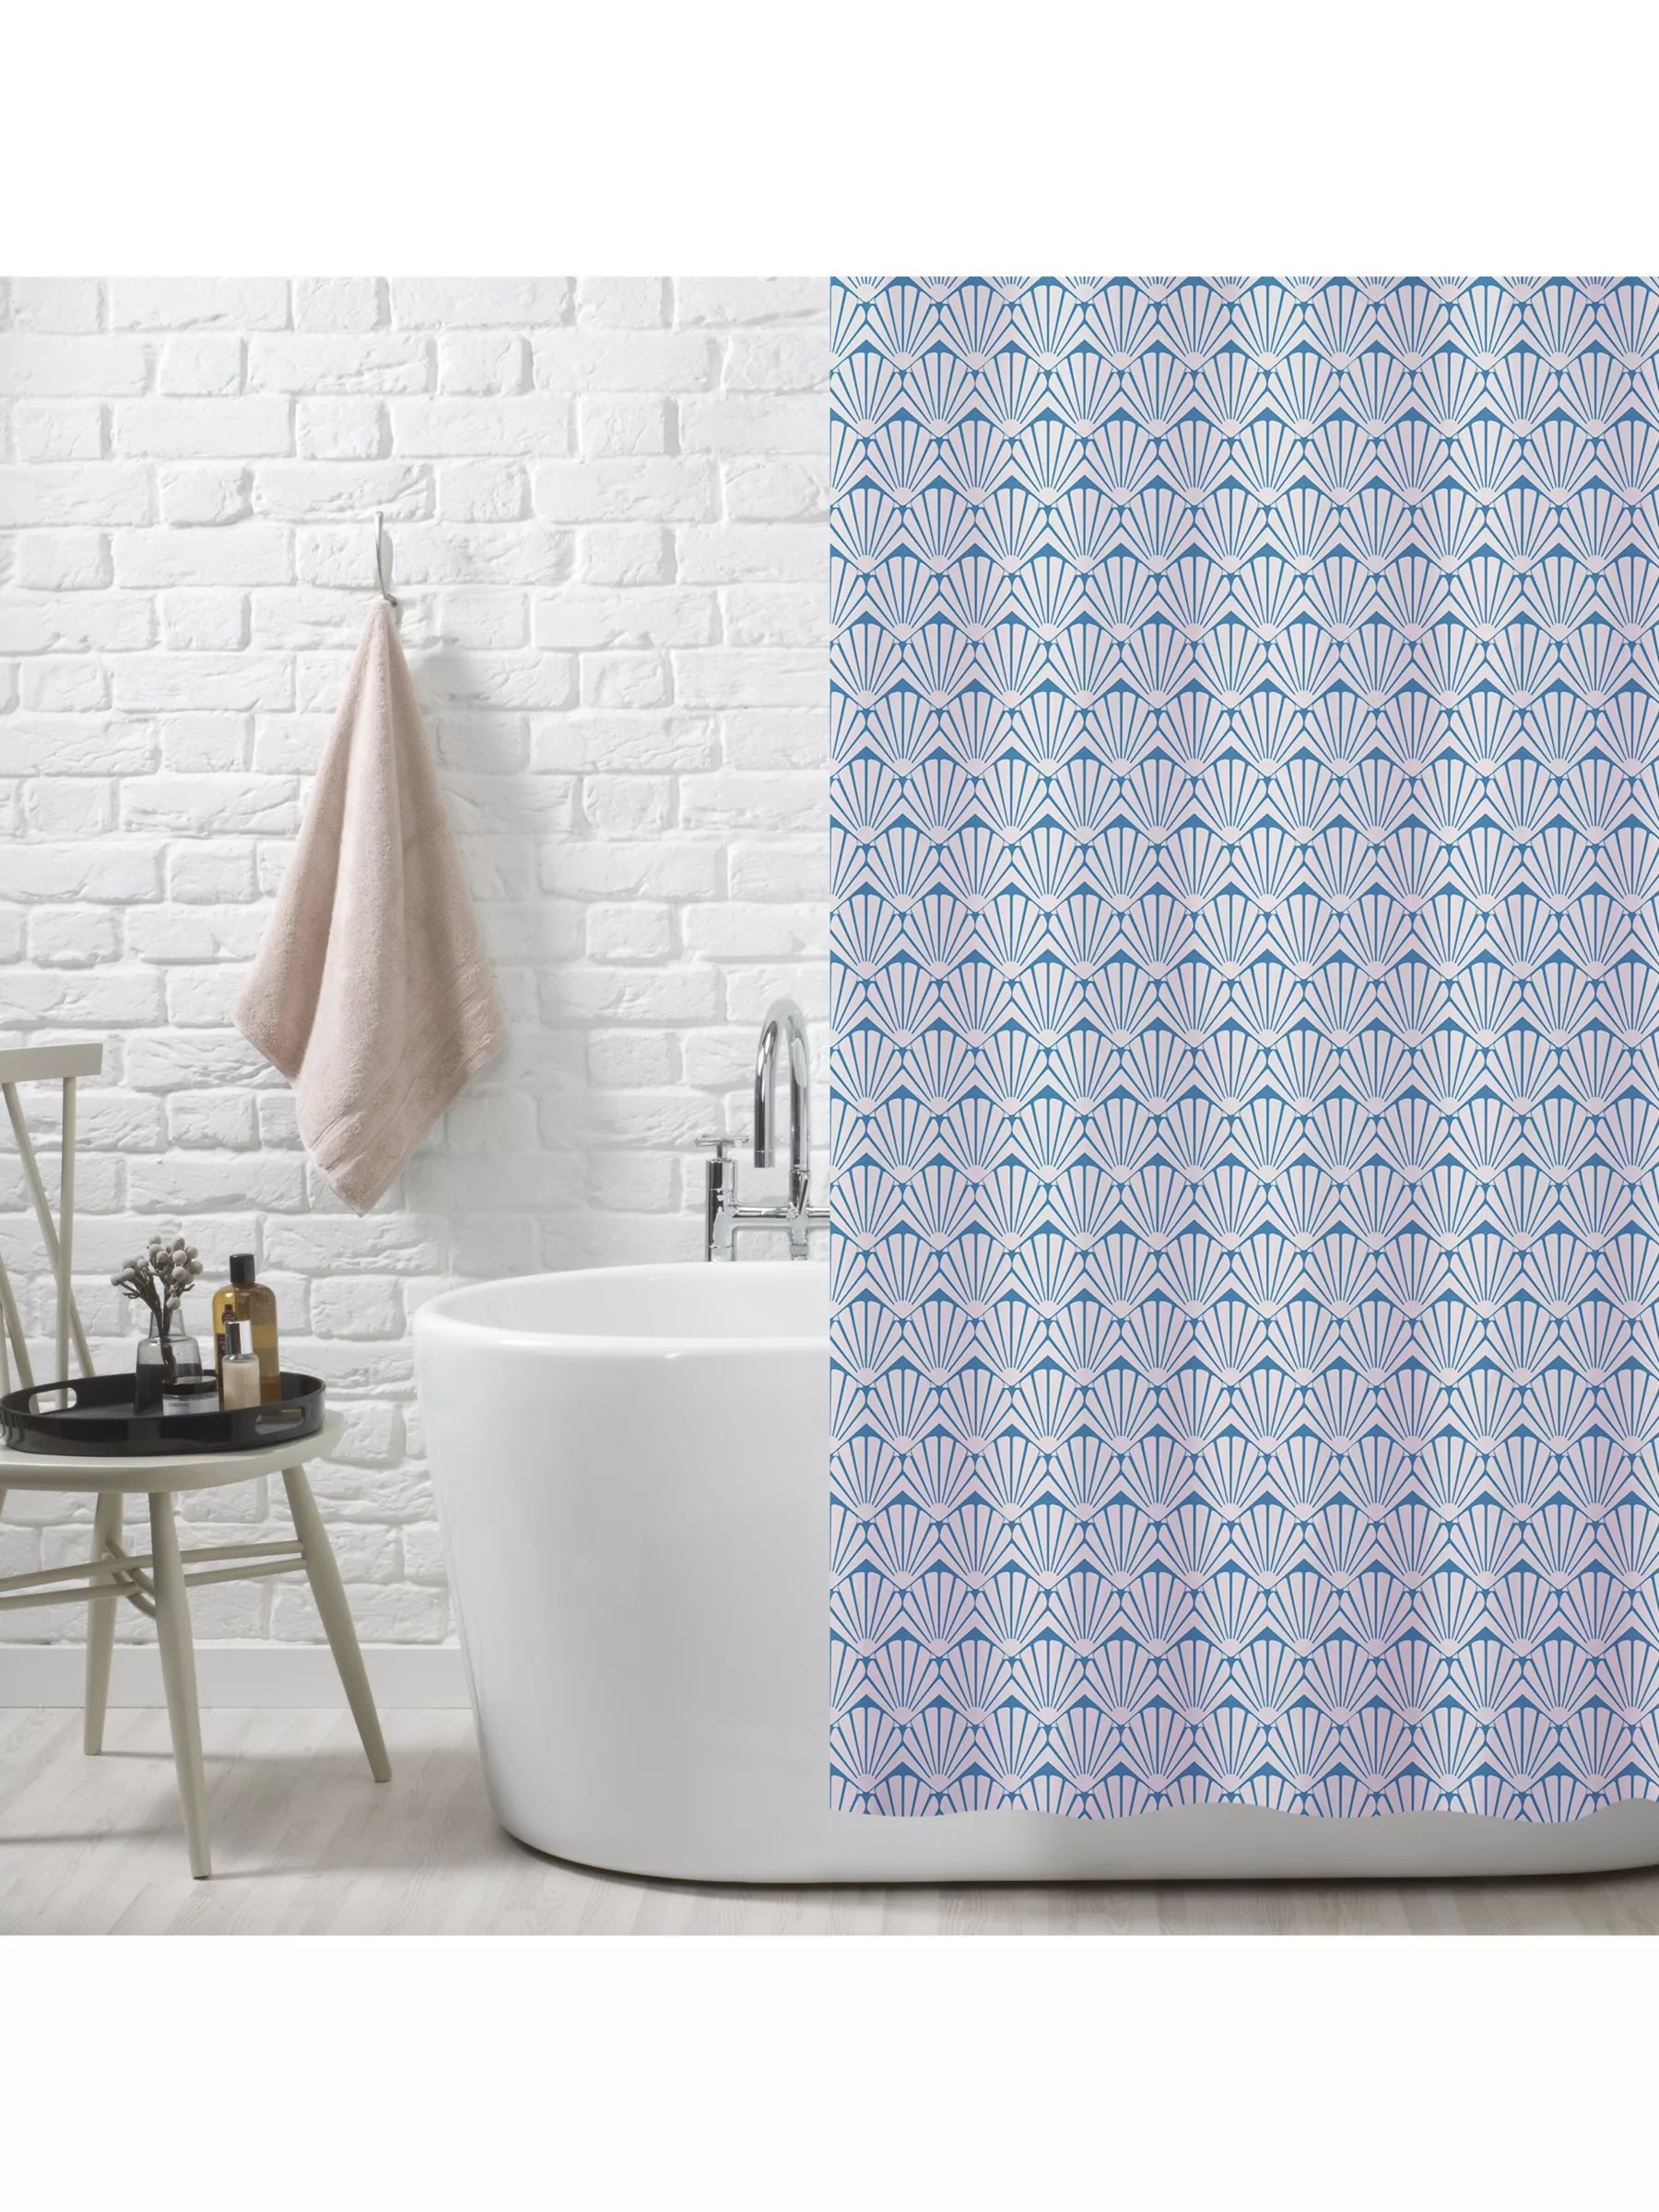 john lewis partners scallop shell recycled polyester shower curtain